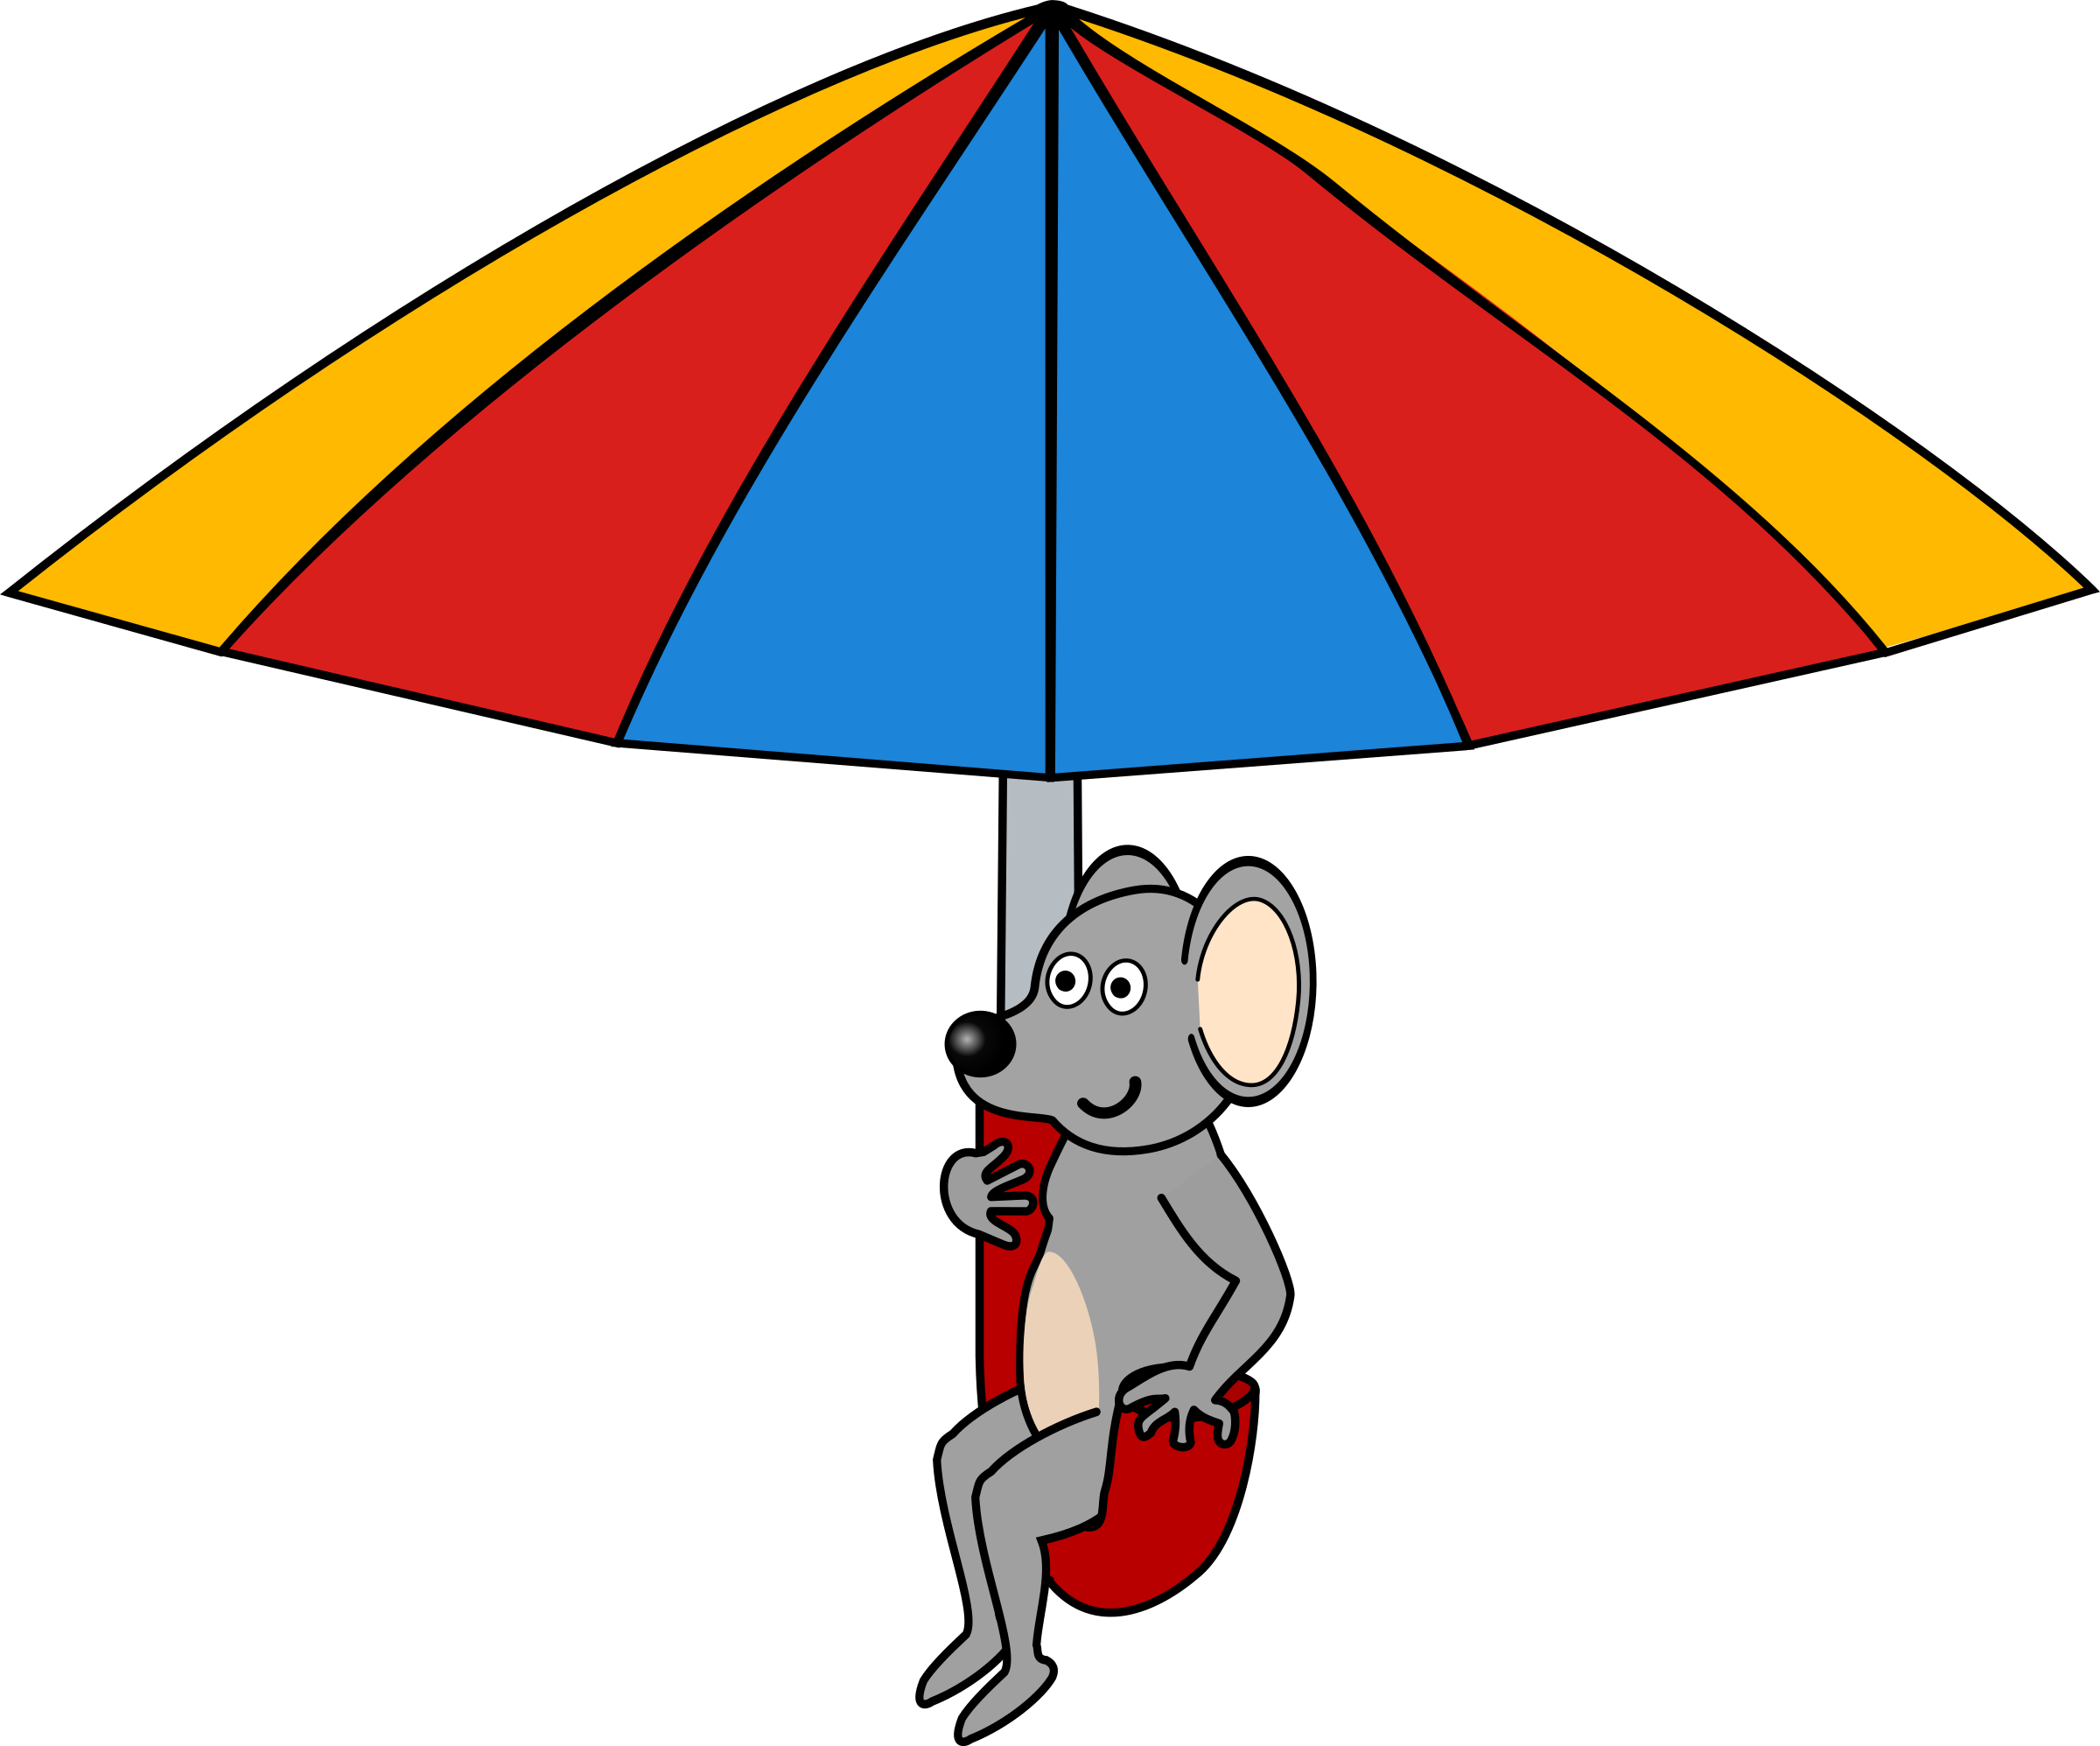 Mouse on umbrella by frankes